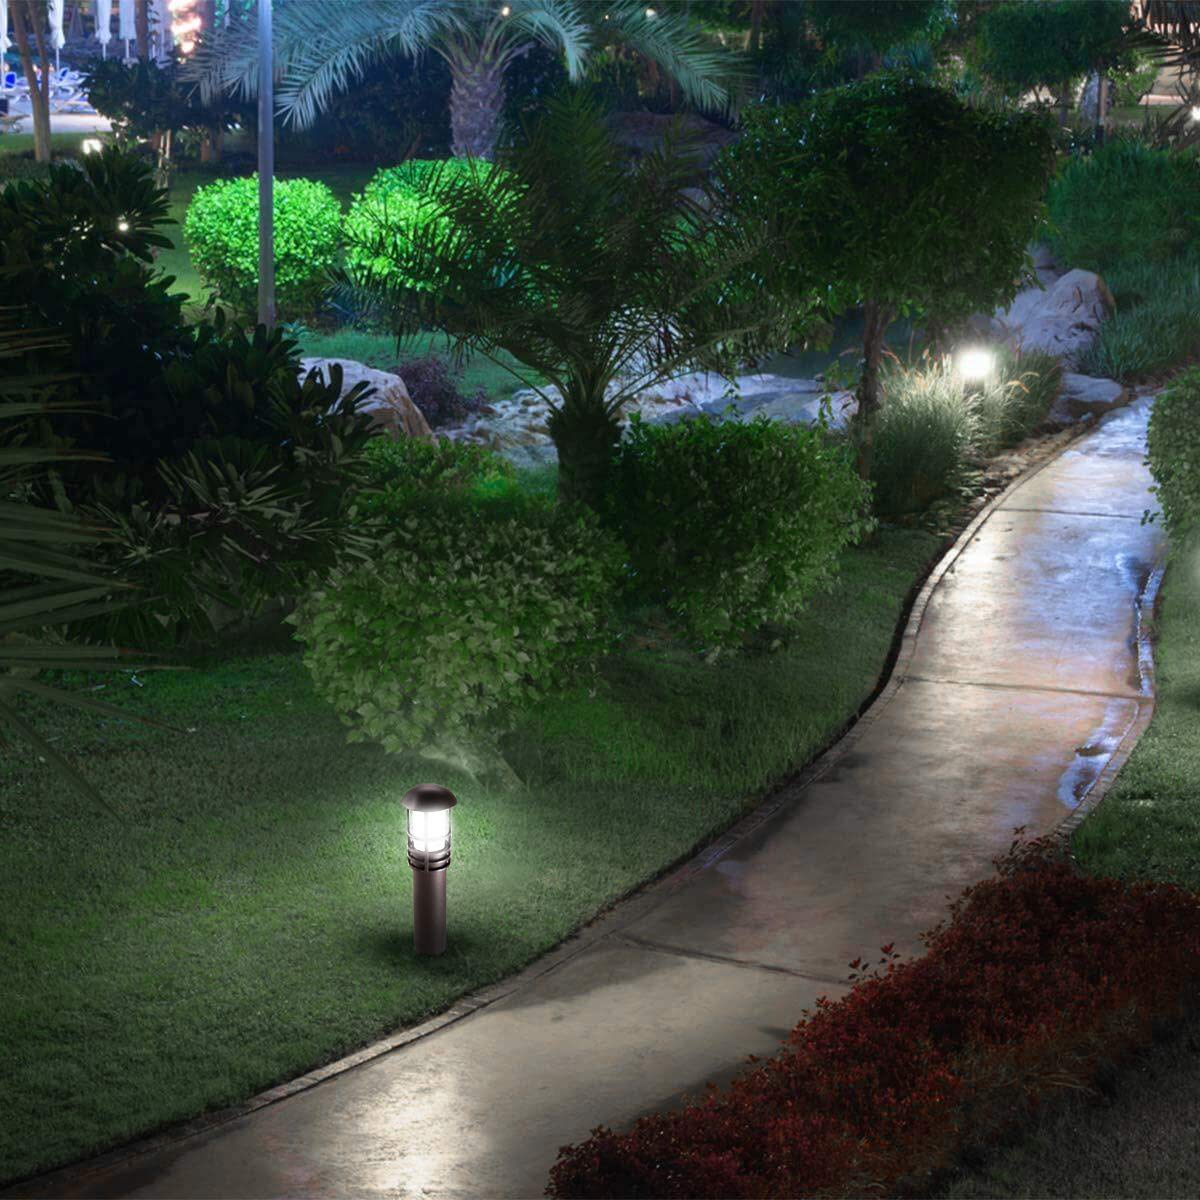 LEONLITE 3W LED Landscape Light, 18W Eqv, 12V Low Voltage, Waterproof, Aluminum Housing with Ground Stake, ETL Listed Outdoor Pathway Garden Yard Patio Lamp, 5000K Daylight, Pack of 12 by LEONLITE (Image #3)